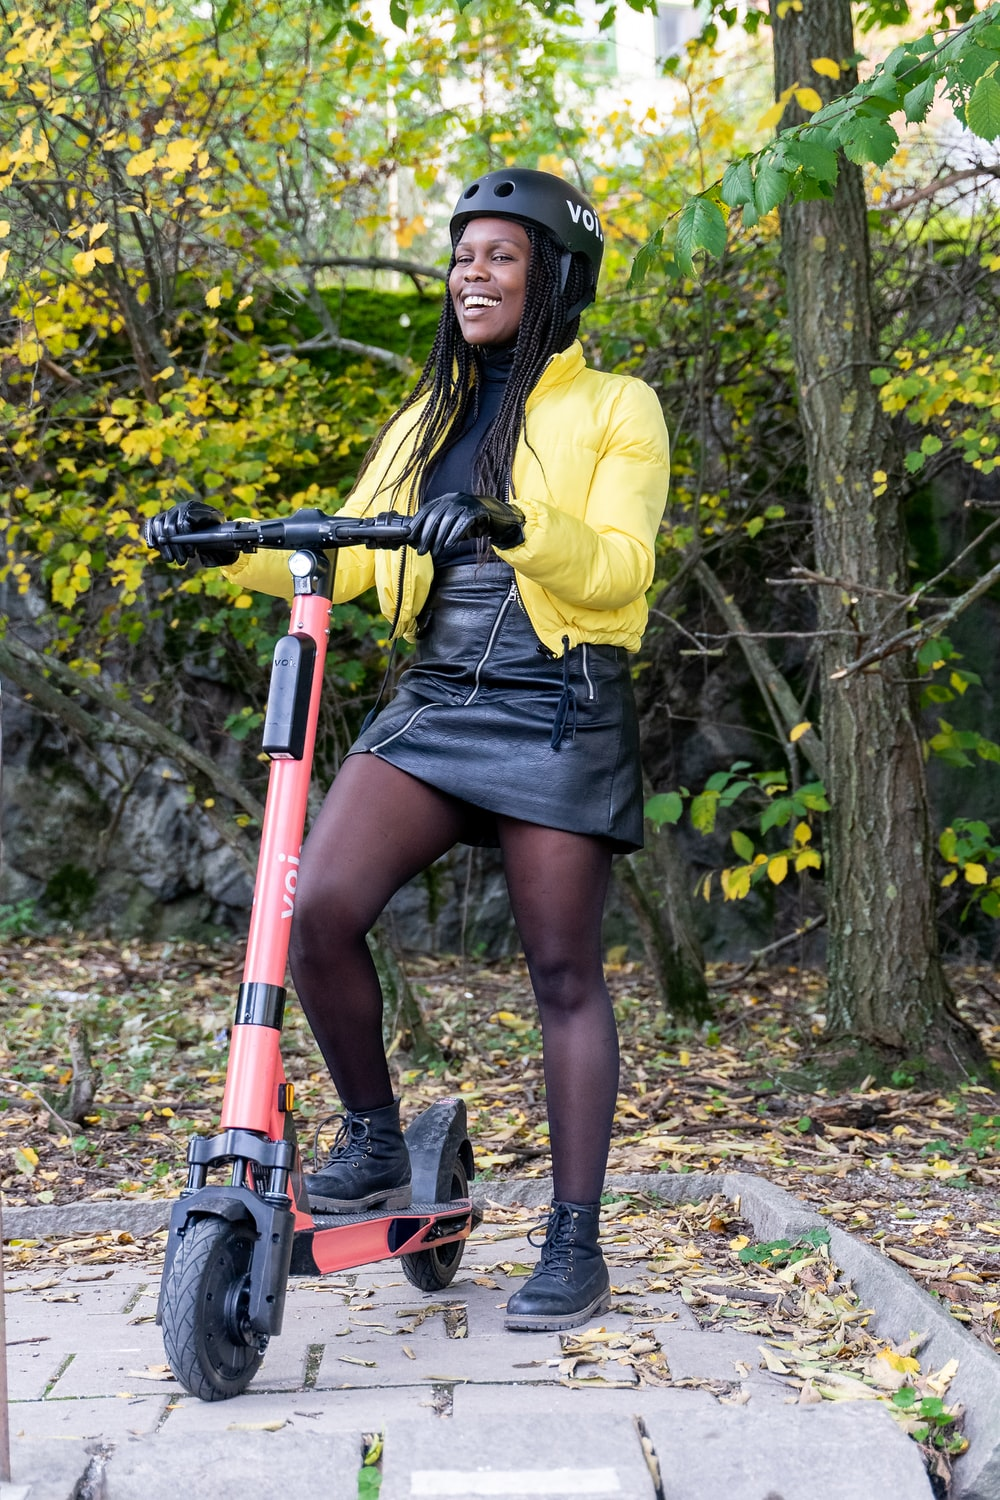 woman in yellow long sleeve shirt and black skirt holding red and black bicycle